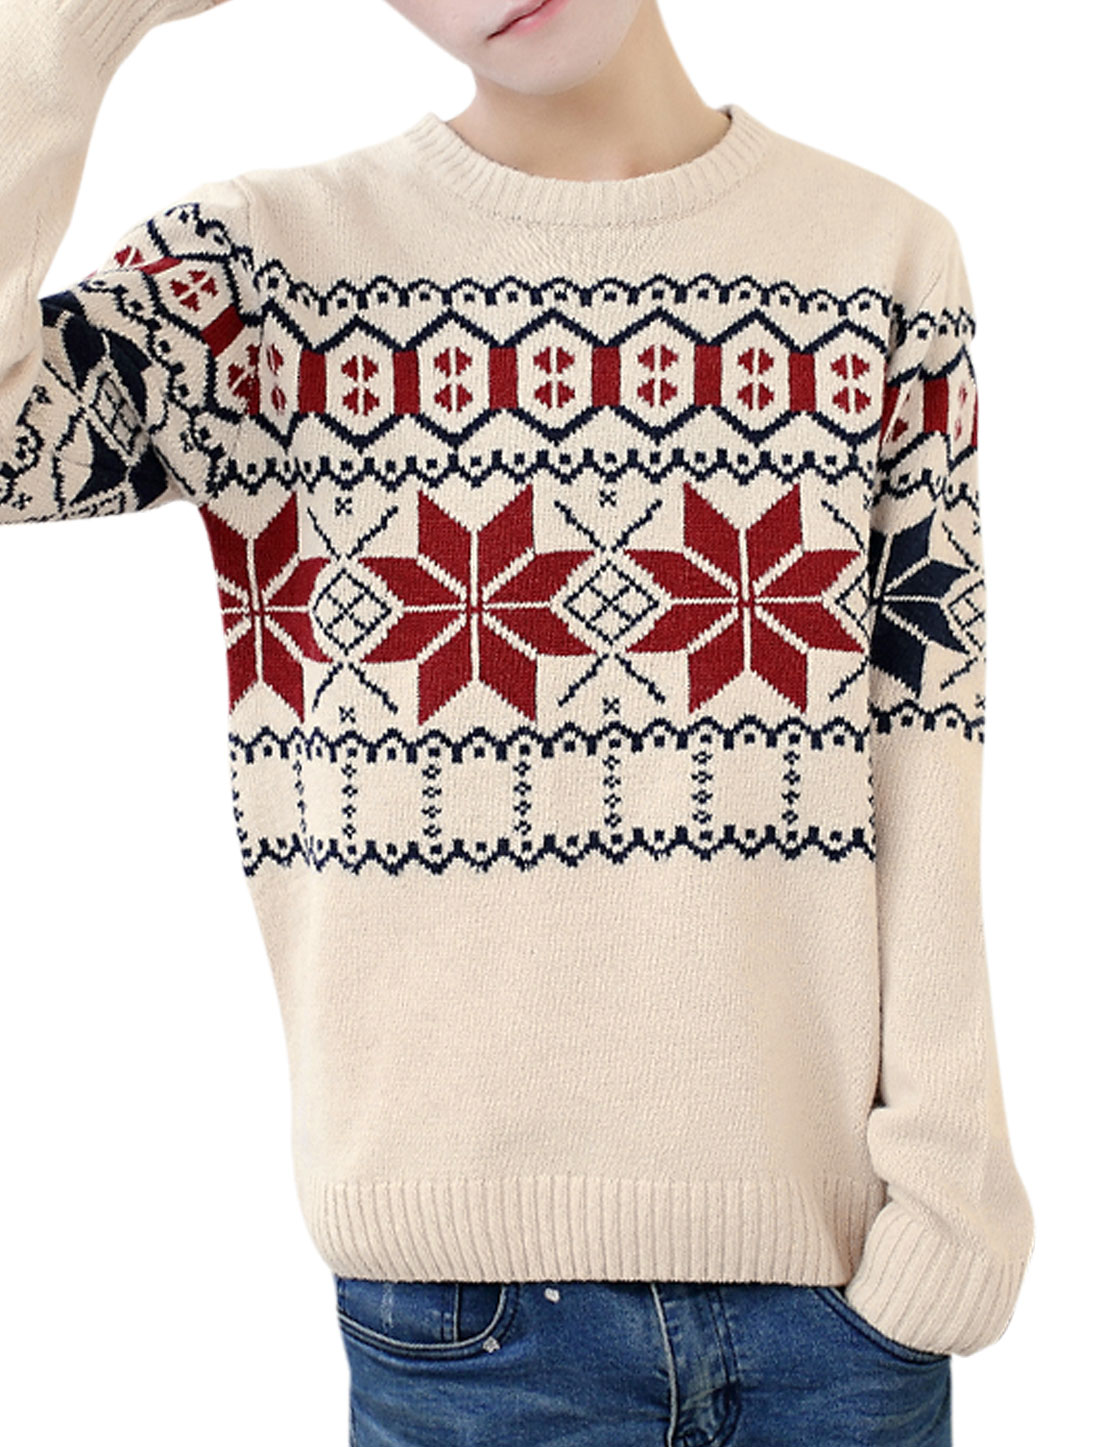 Man Geometric Pattern Full Sleeves Pullover Beige Sweater S